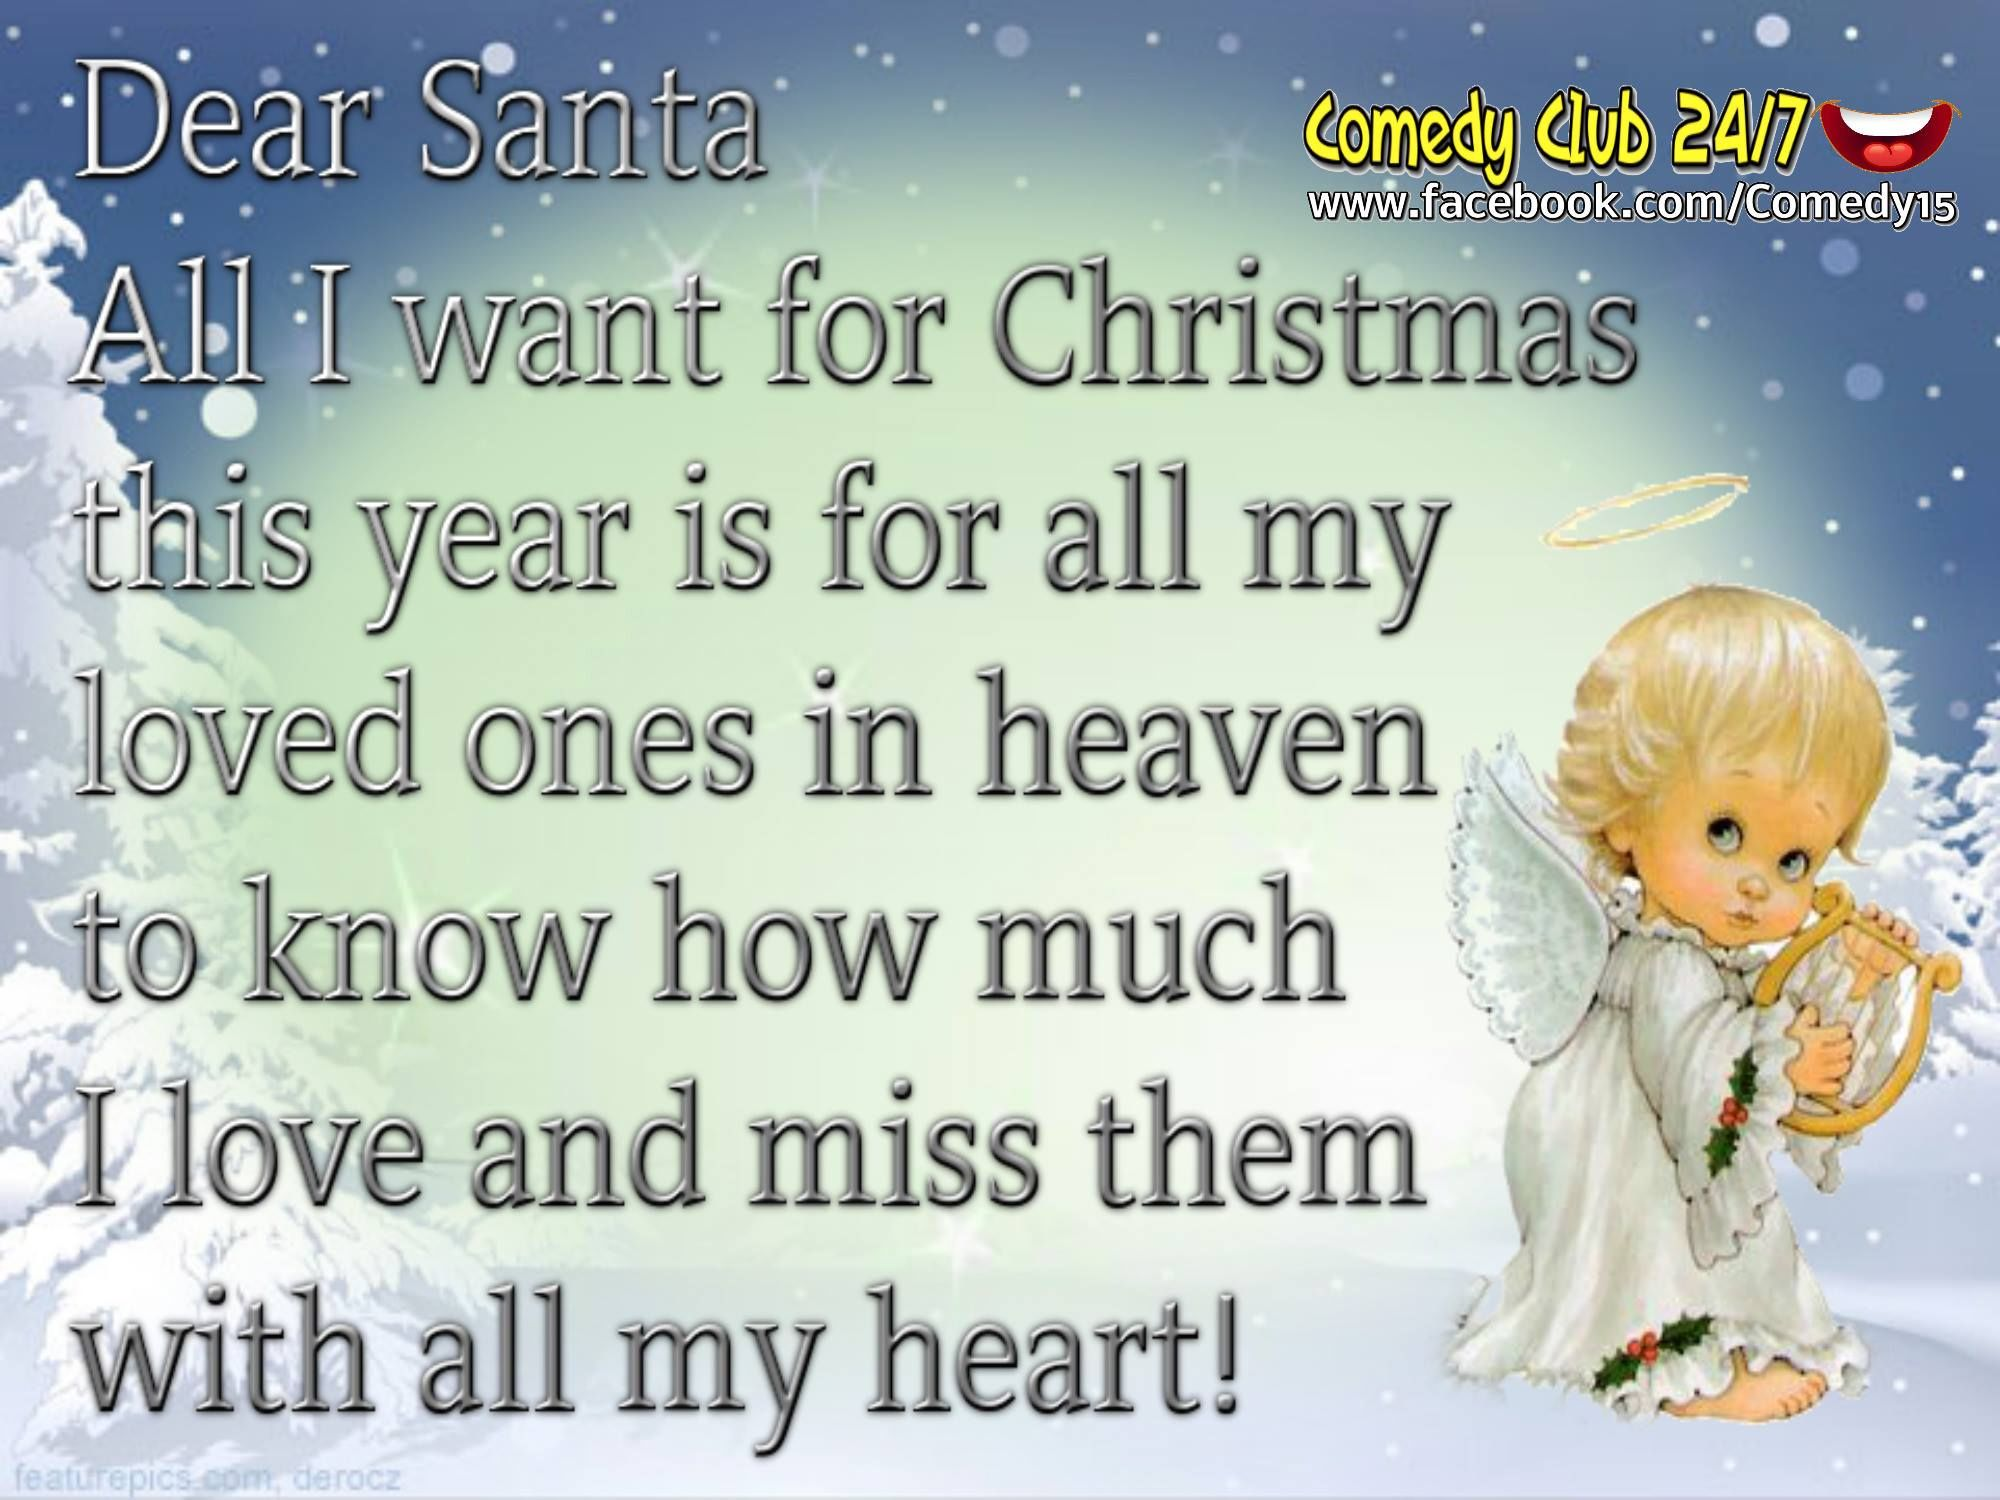 Quotes For Loss Of A Loved One Christmas Quotes For Loss Of Loved One  All Ideas About Christmas